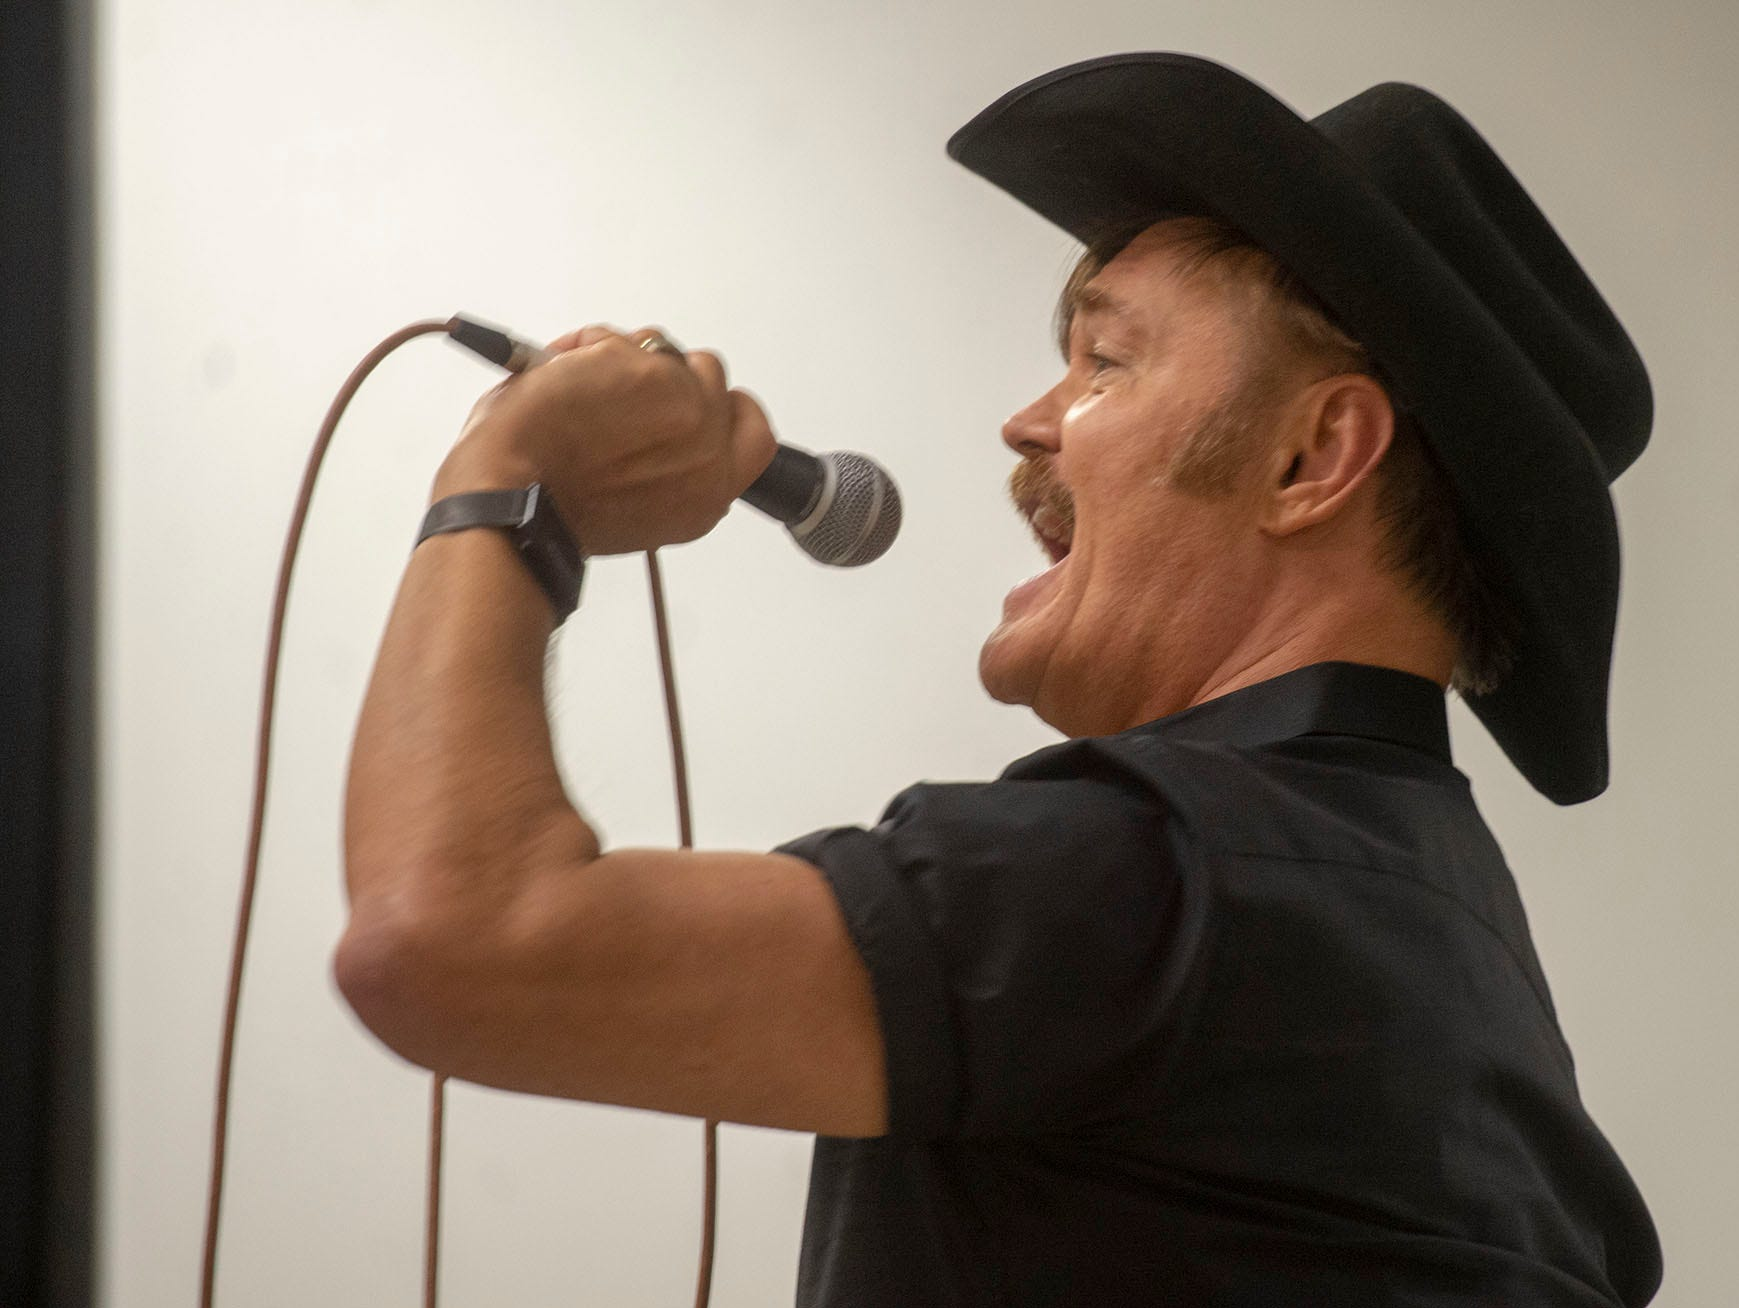 """Randy Jones of the Village People performs """"Rhinestone Cowboy"""" in memory of Glen Campbell at the White Rose Comic Con, which runs through Sunday, March 24, 2019 at Utz Arena of the York Fairgrounds."""